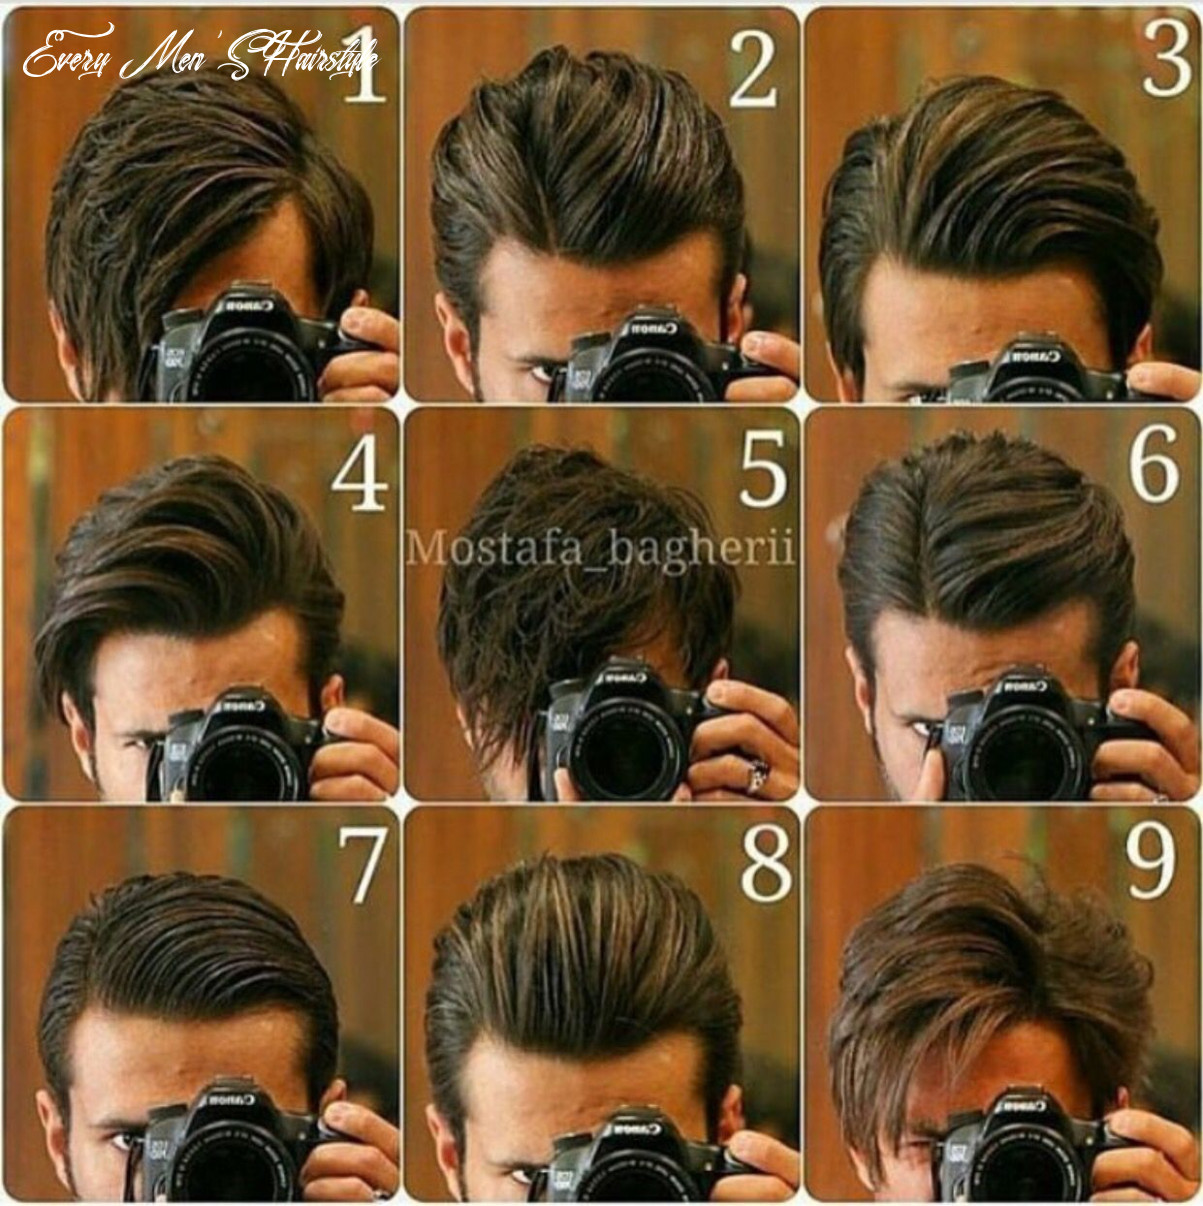 Perfect hair styles for every men i will like 10th one :) | 이발